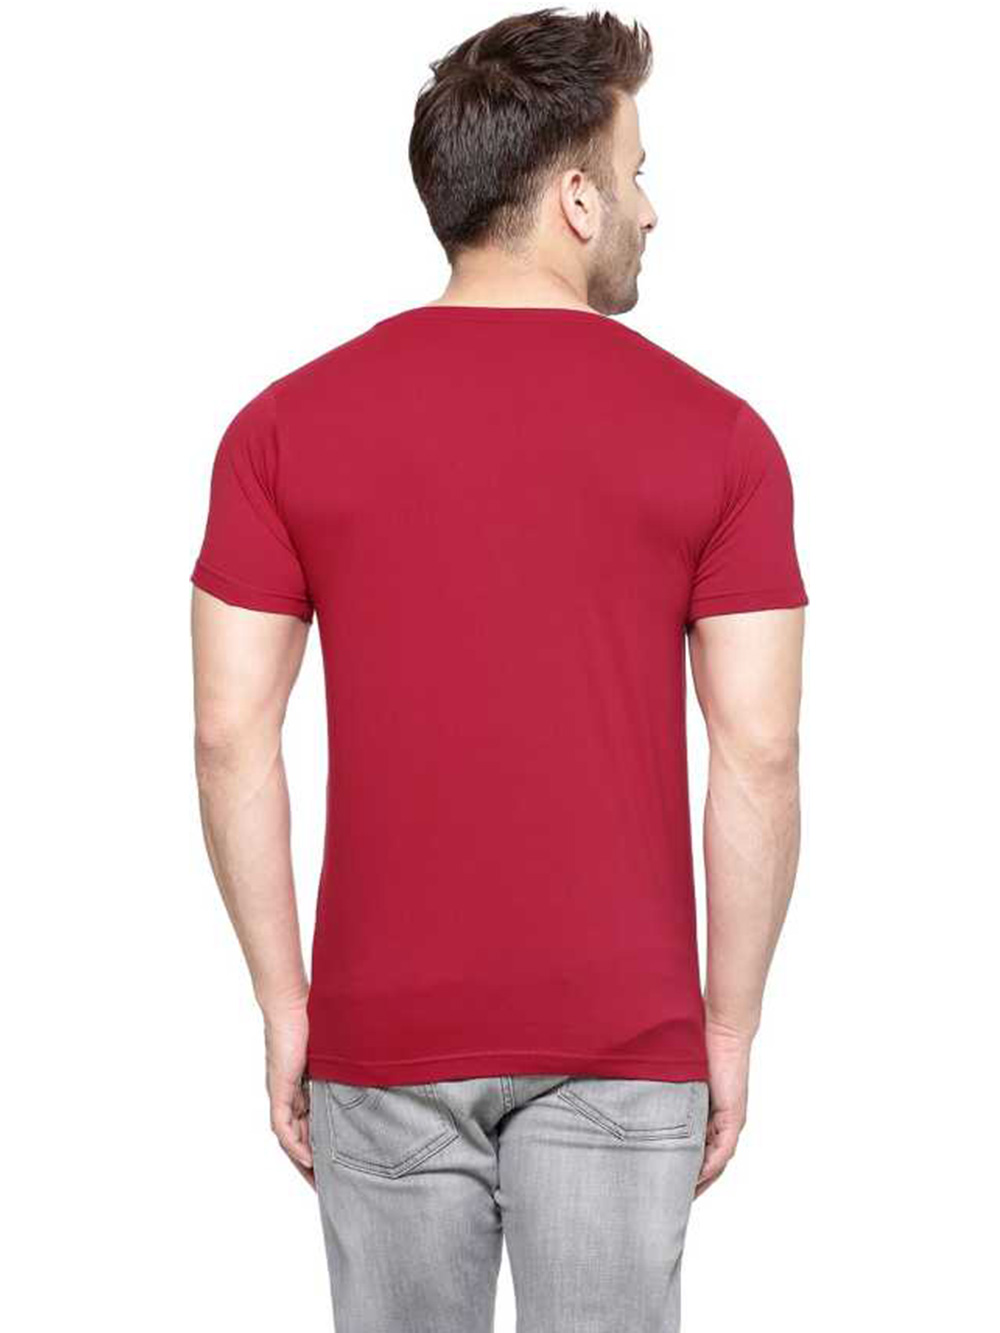 RETS007 Solid Men's Round Half T-Shirt